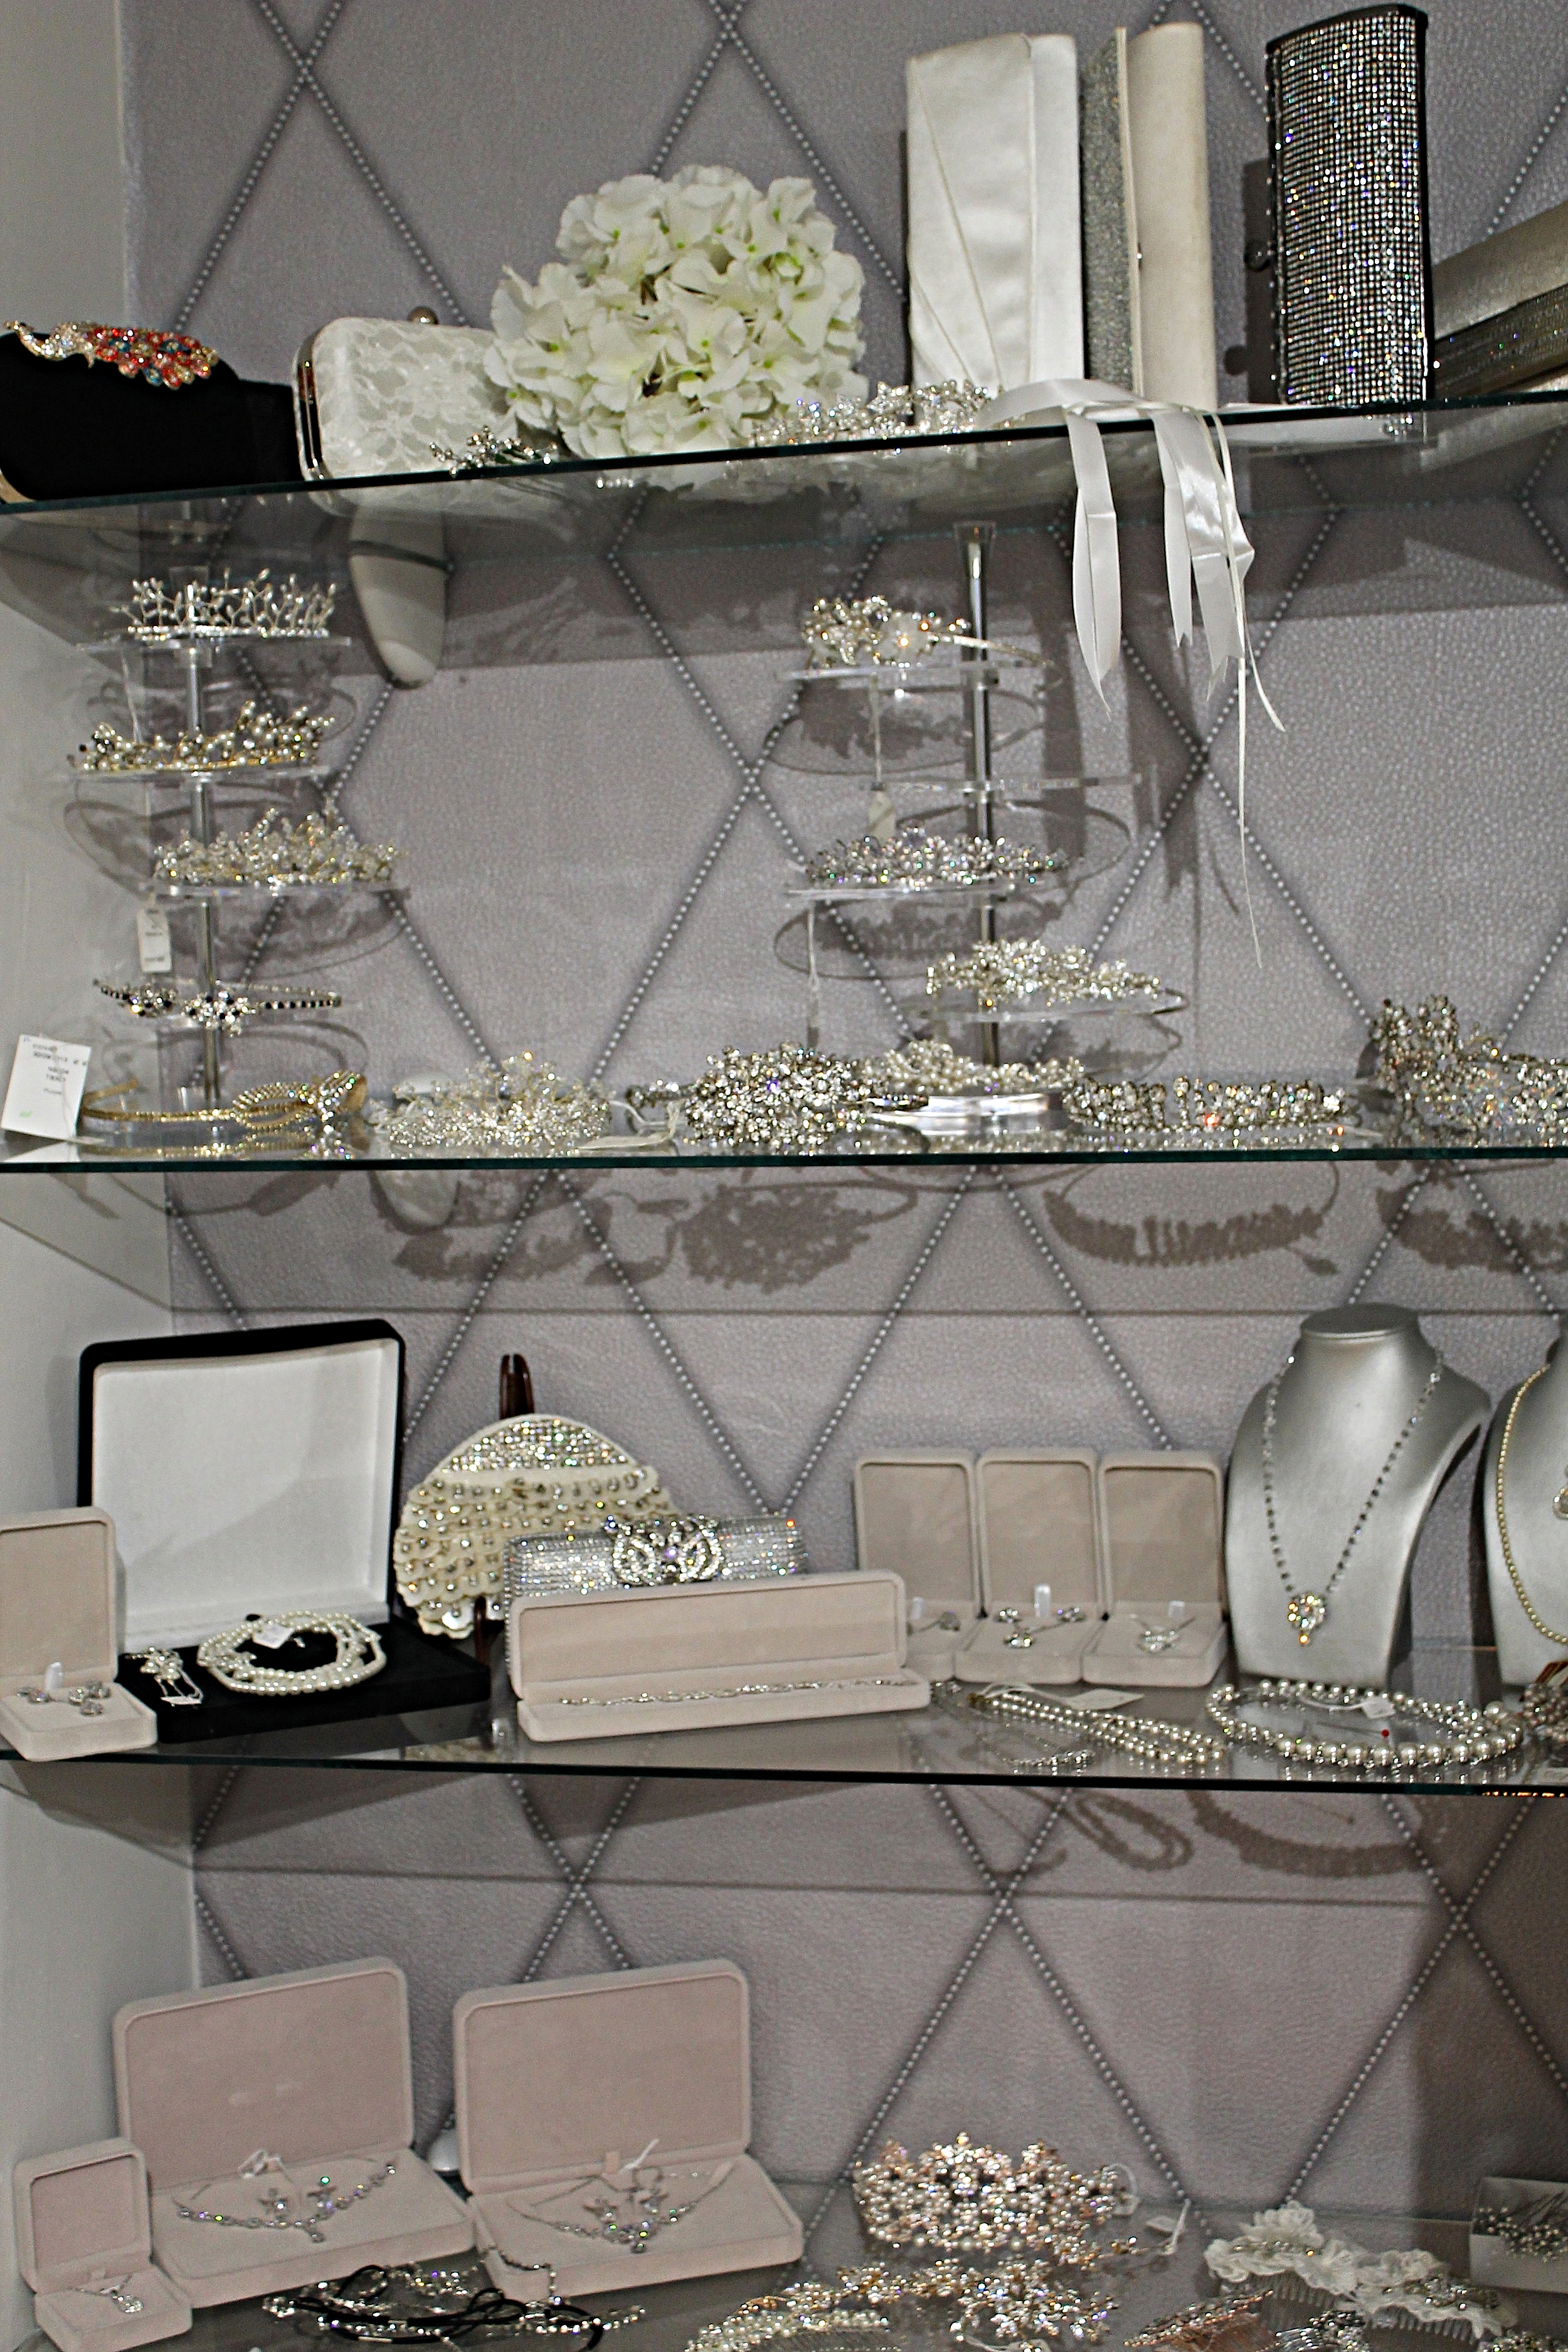 A stunning selection of diamante, crystal, pearl, silver, gold and rose gold accessories, to explore what will match your choice beautifully. Featuring belts, necklaces, earrings, headdresses, combs or simple pins, the selection will help you to achieve several different looks.